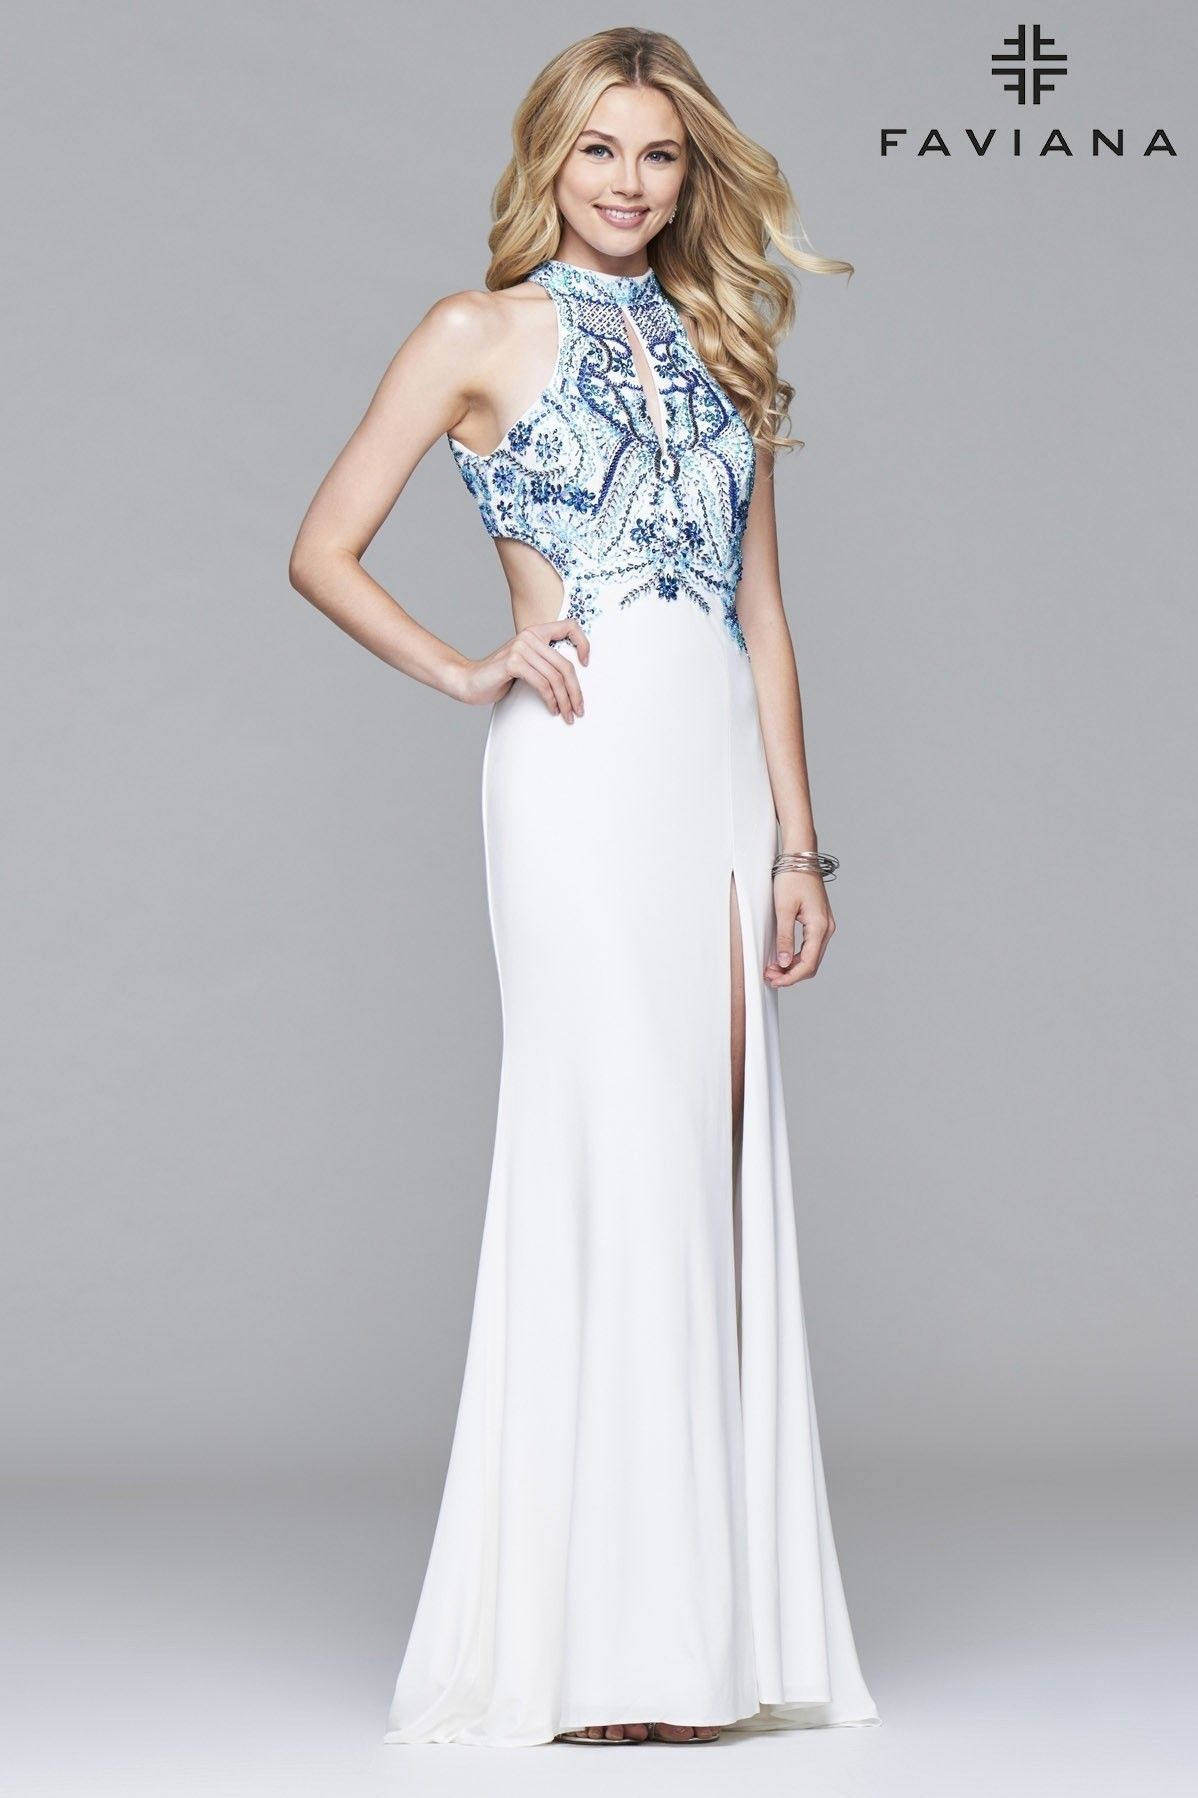 S All Faviana Dresses Pinterest Dresses Prom dresses and Prom